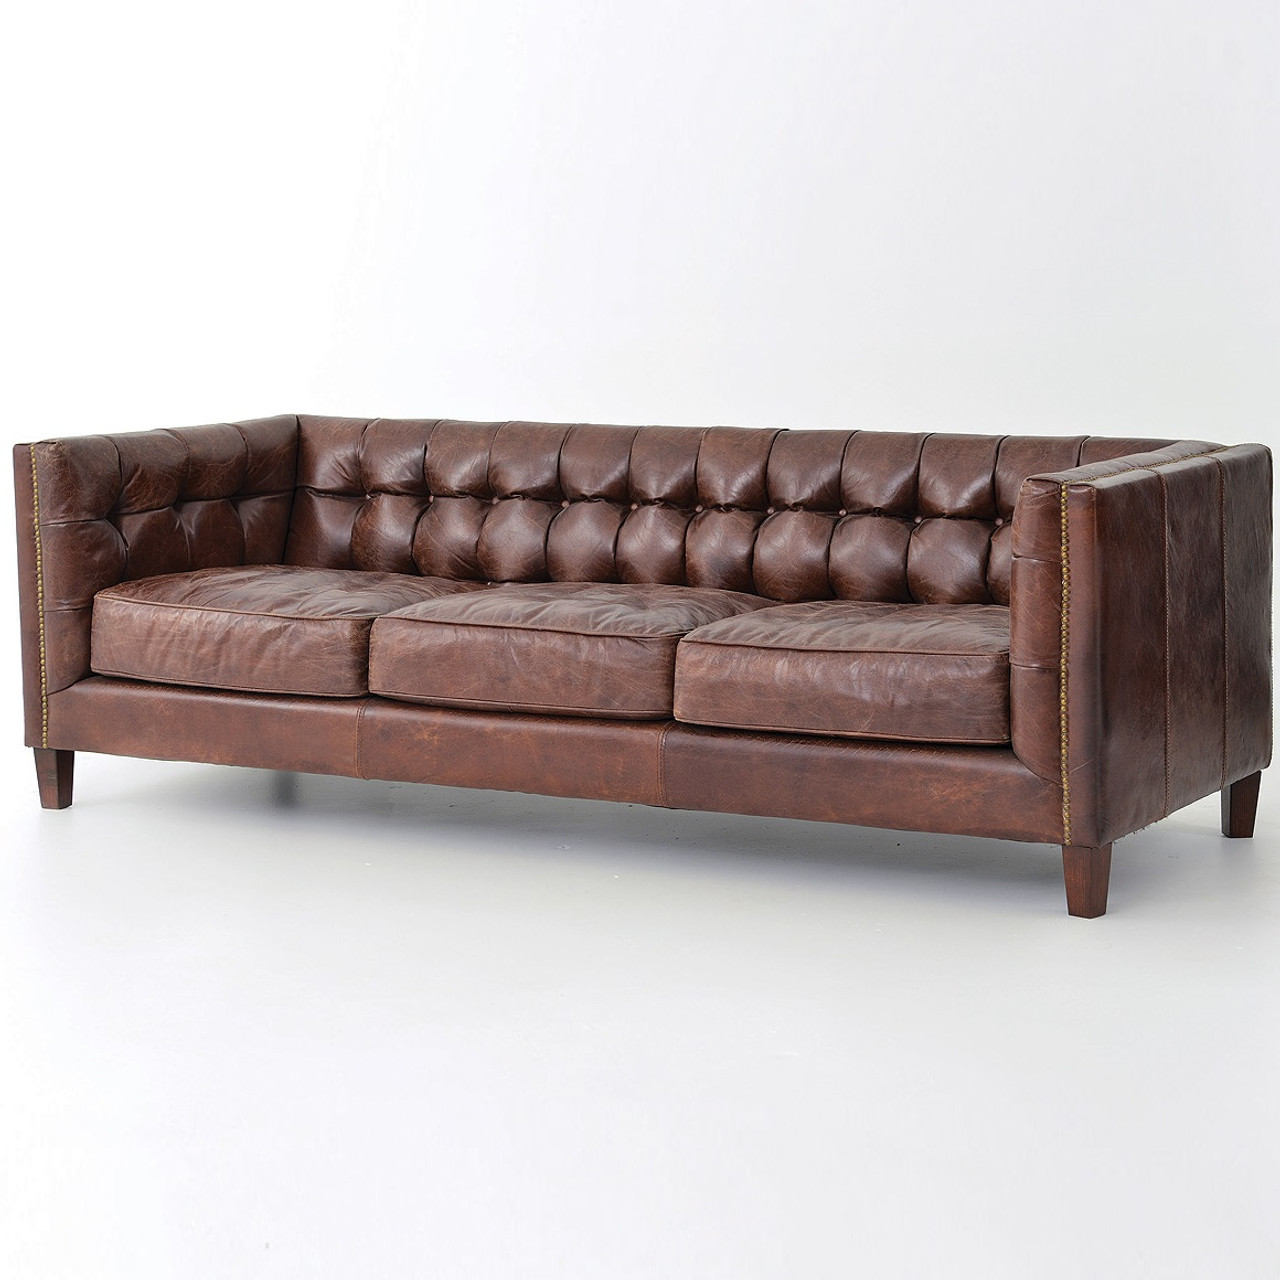 Bettsofa Vintage Abbott Vintage Cigar Tufted Leather Sofa